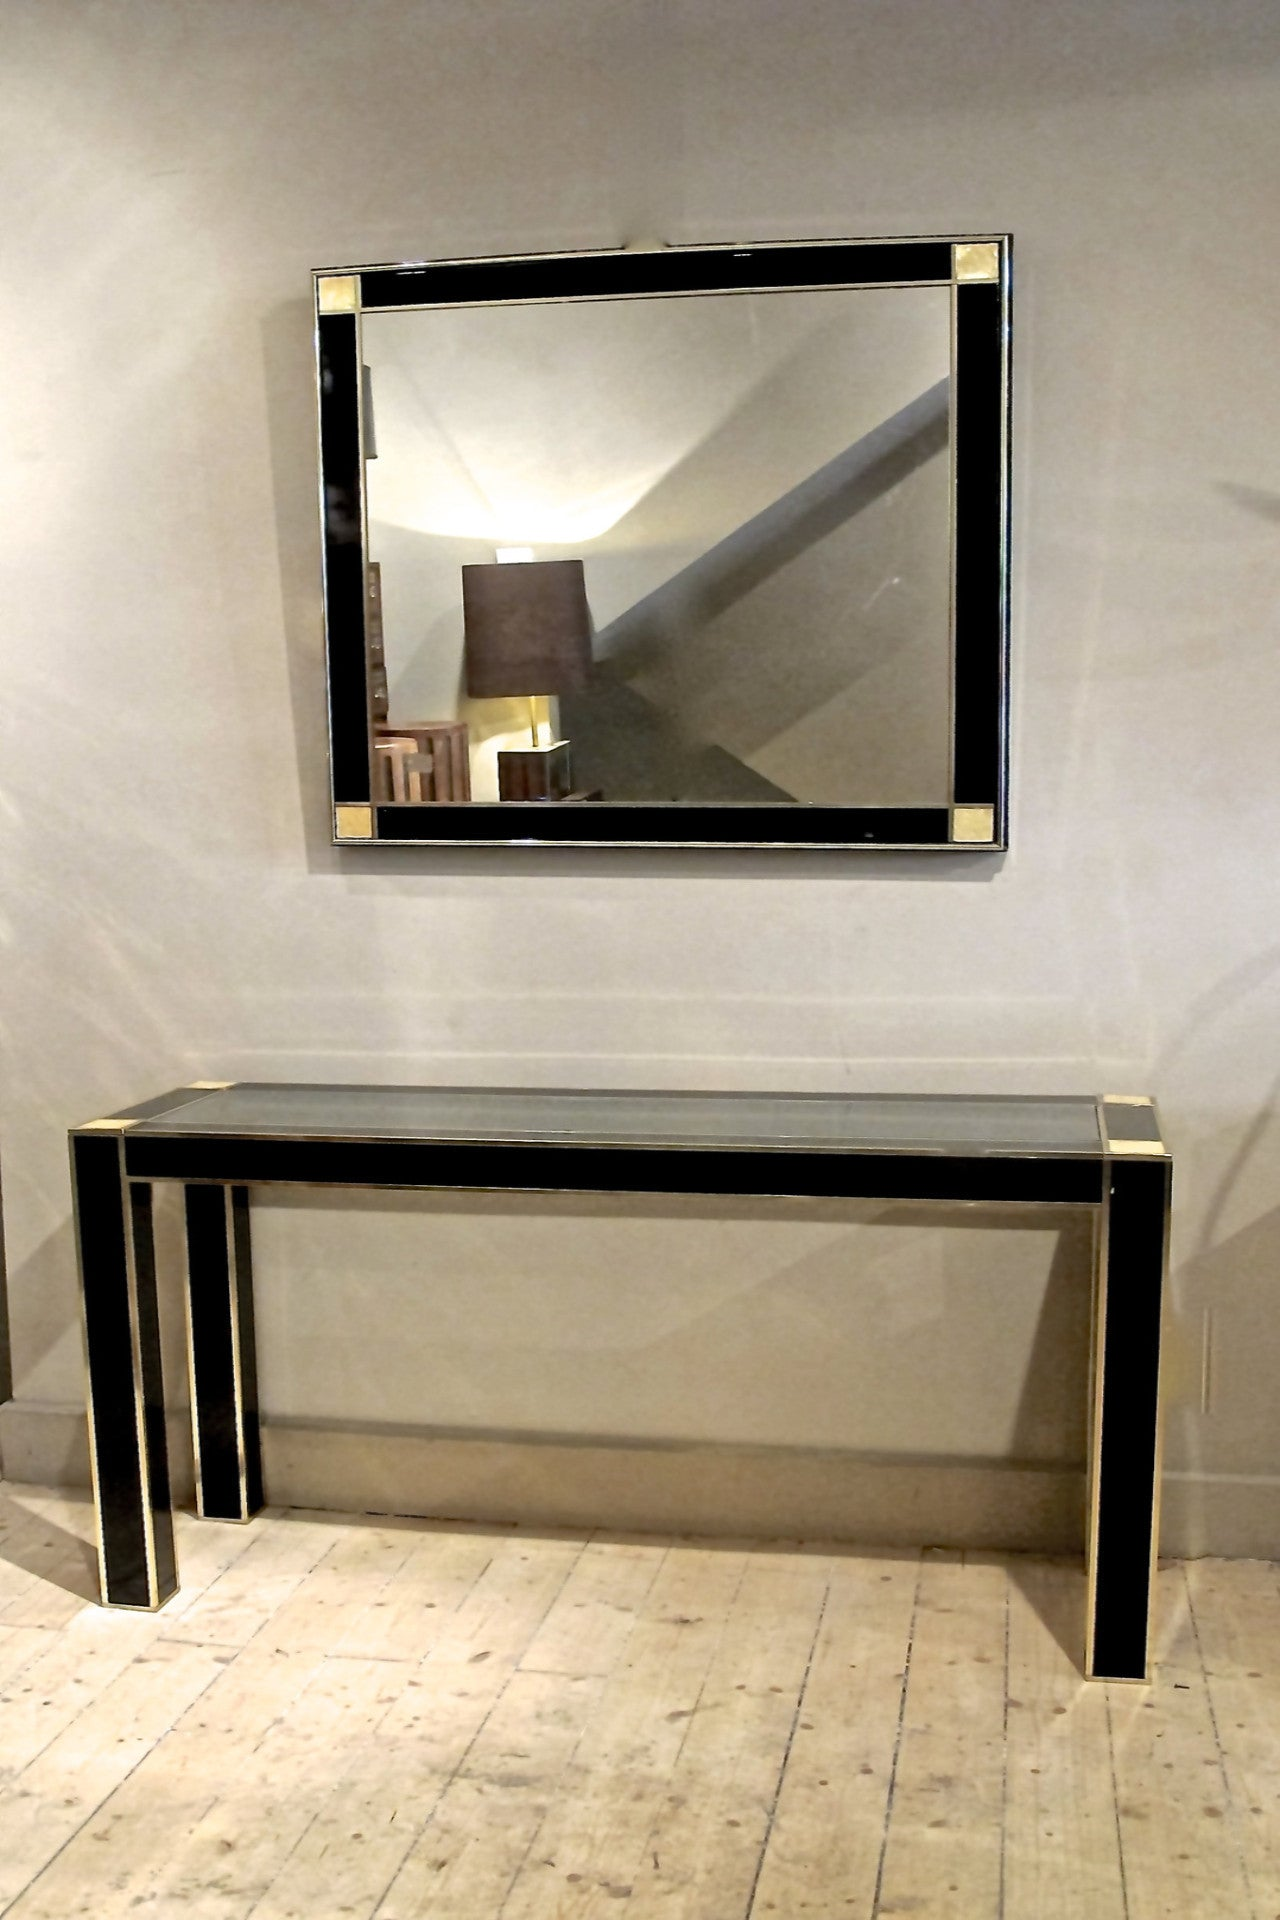 A superb quality black lacquer console and mirror with solid brass trim and mother of pearl corner details.